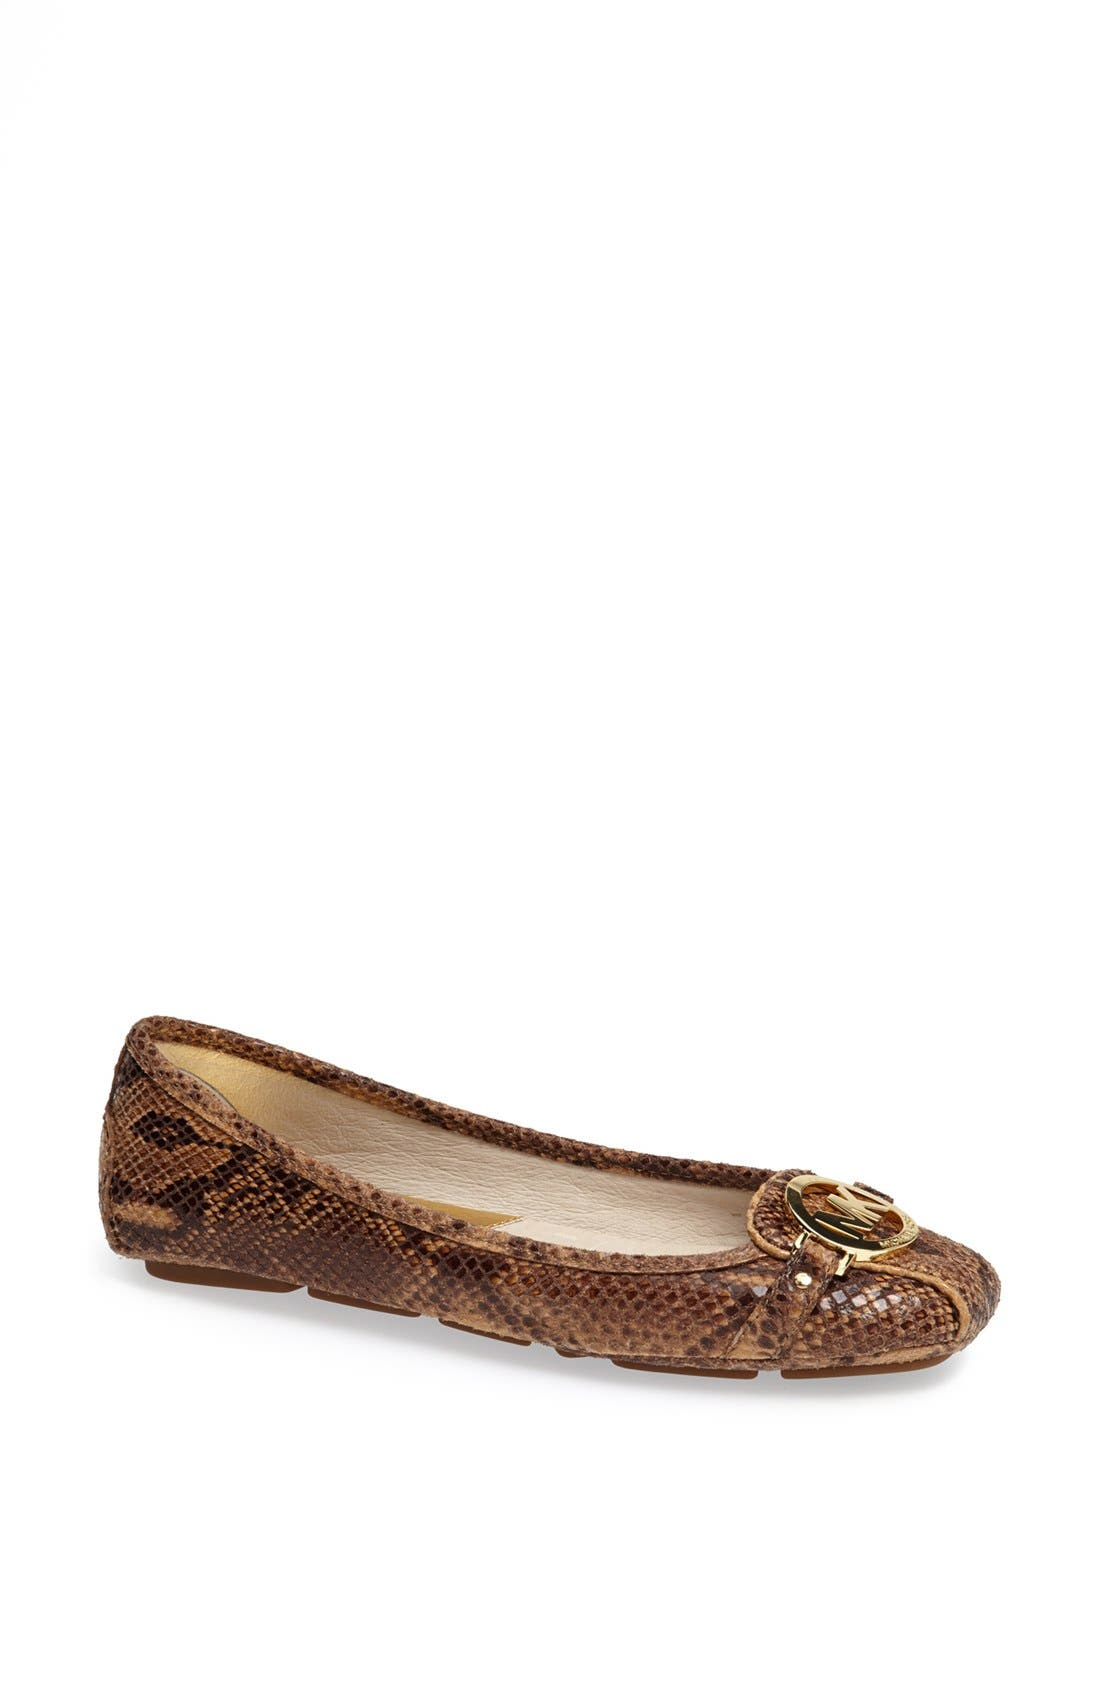 Alternate Image 1 Selected - MICHAEL Michael Kors 'Fulton' Moccasin (Women)